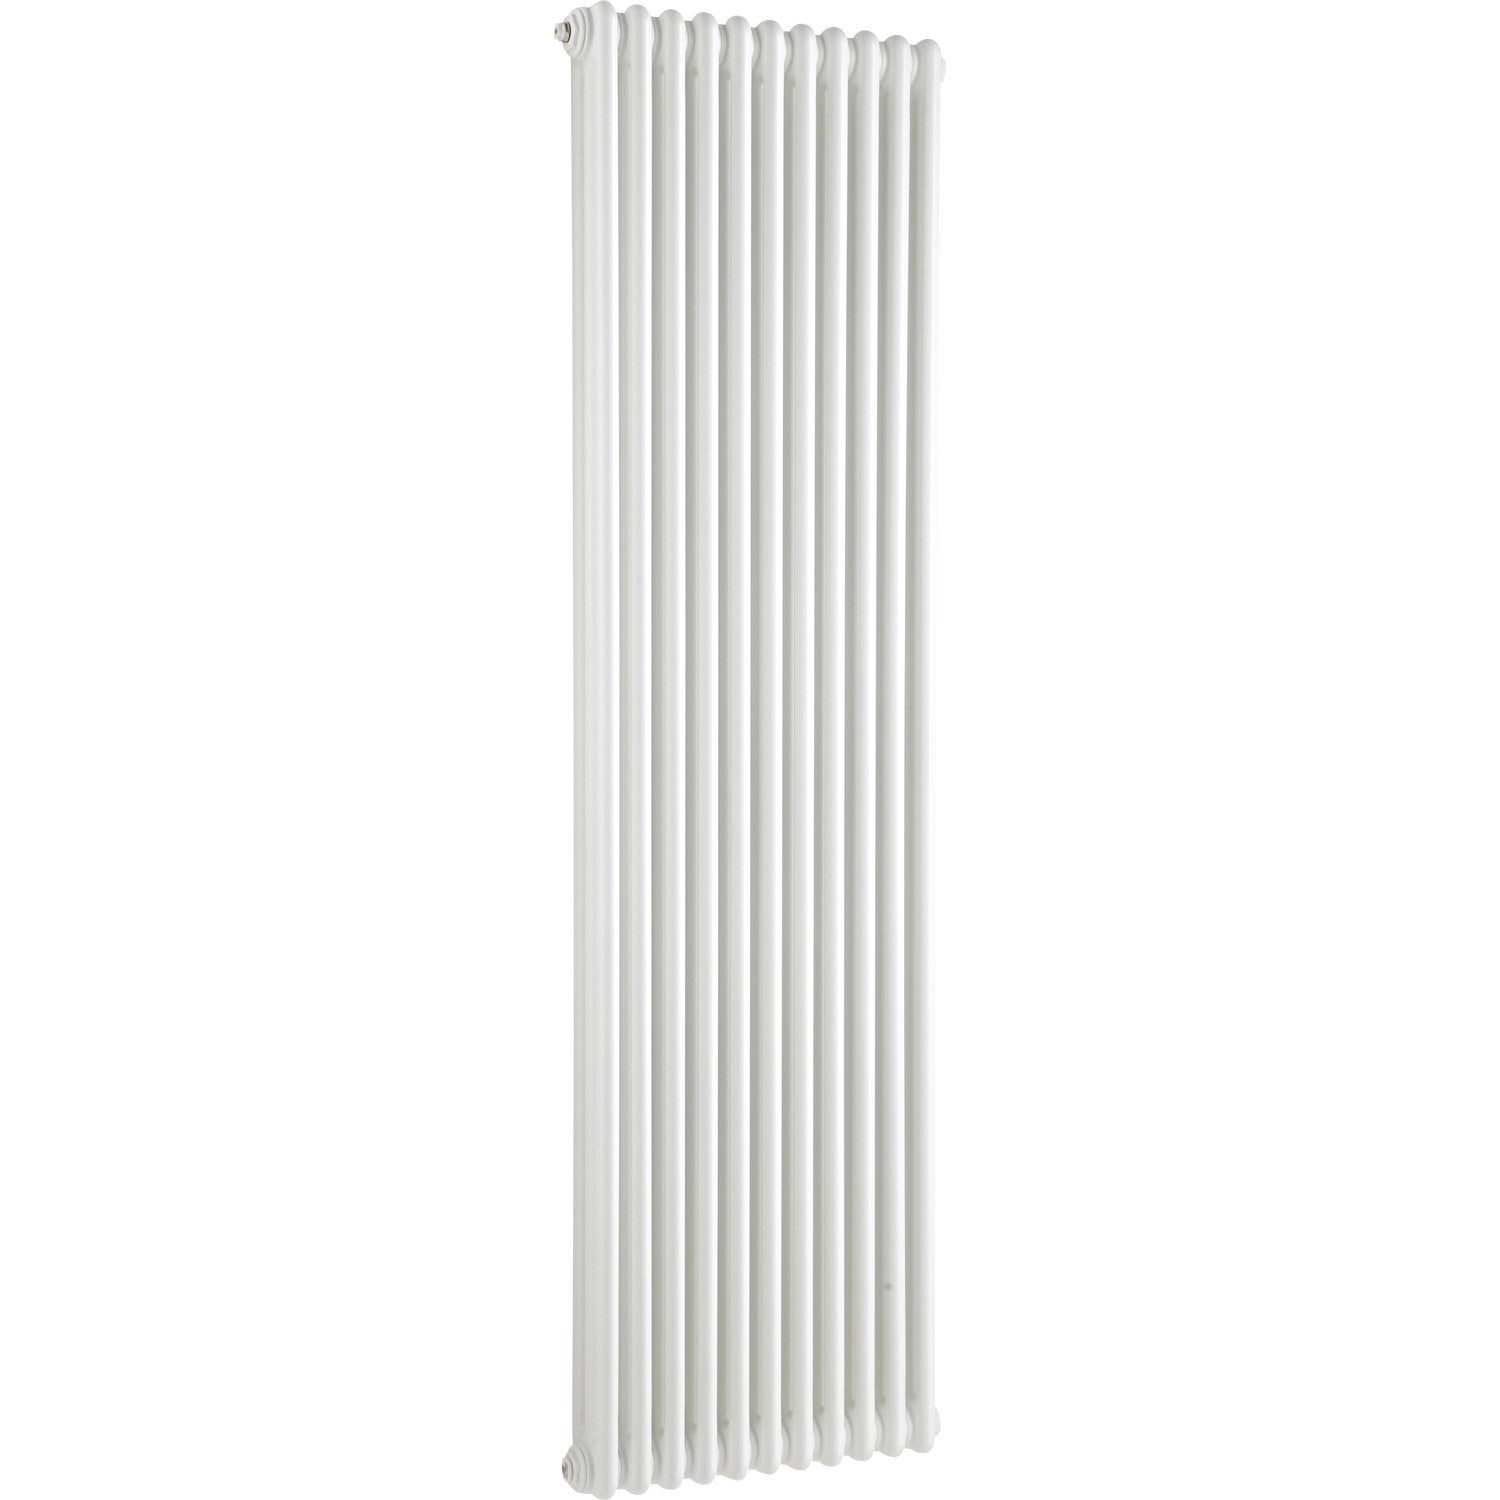 radiateur chauffage central acier tesi 3 blanc 1858w. Black Bedroom Furniture Sets. Home Design Ideas